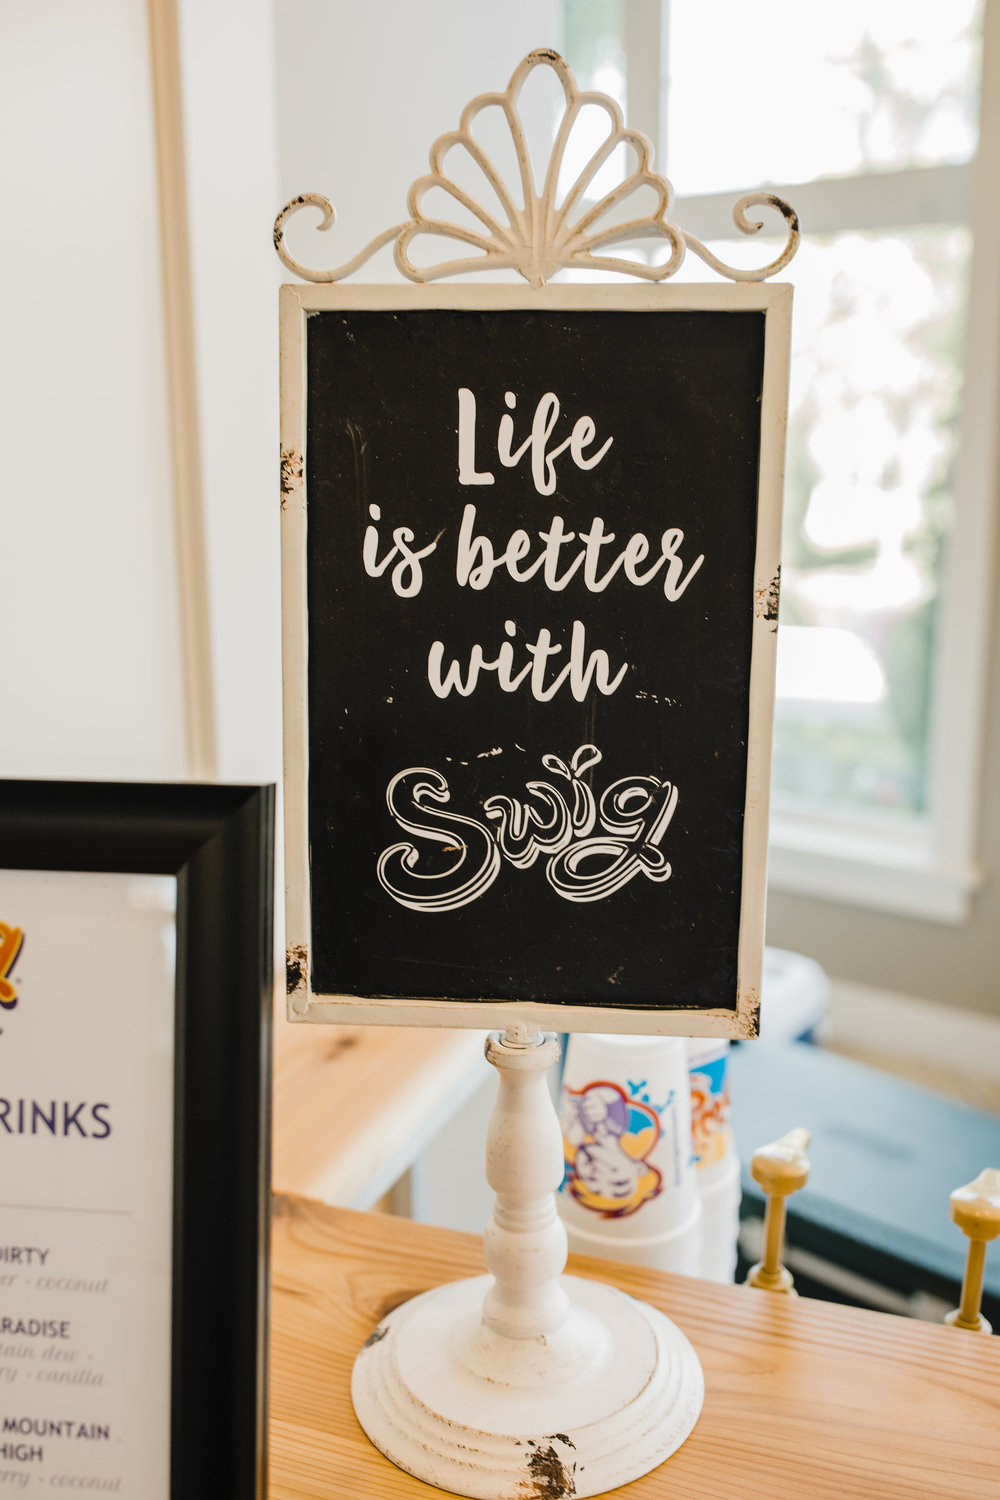 life is better with swig chalkboard sign wedding refreshments swig and sweets soda and cookies wedding day dessert table